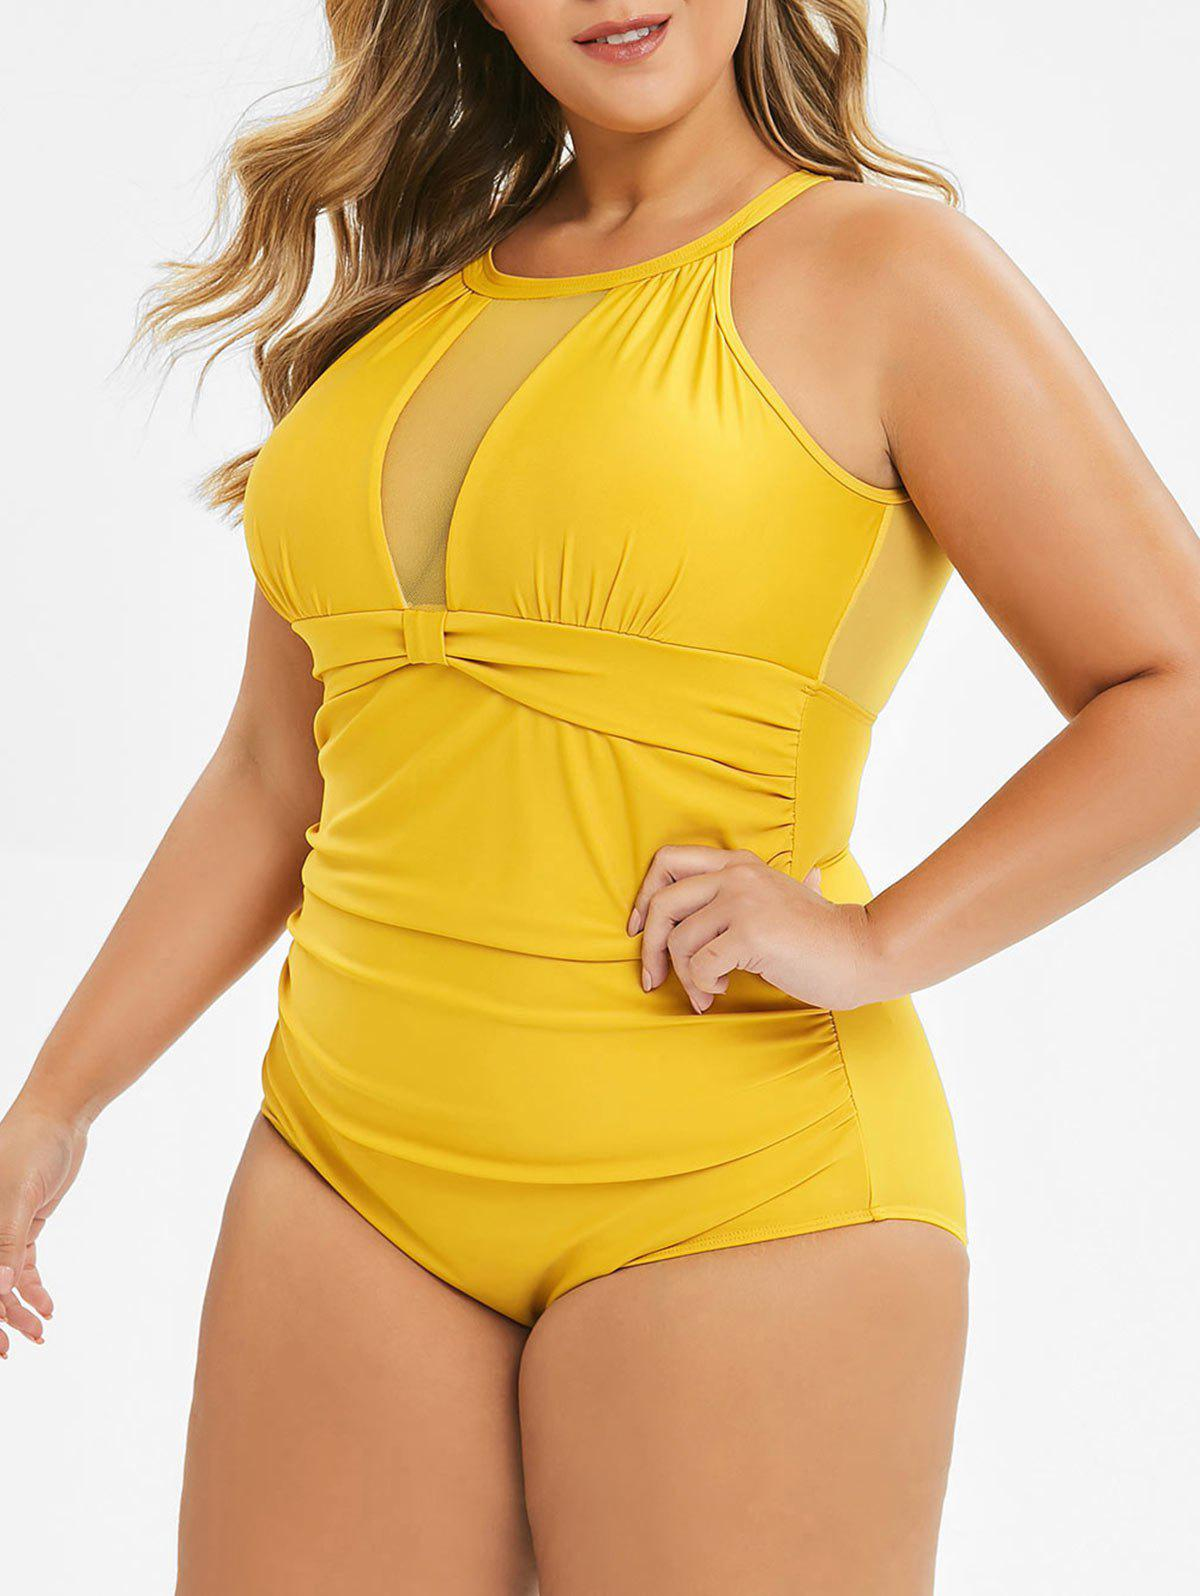 7dbd20d1b87e 44% OFF] Plus Size Cut Out Sheer Mesh Ruched One-piece Swimsuit ...